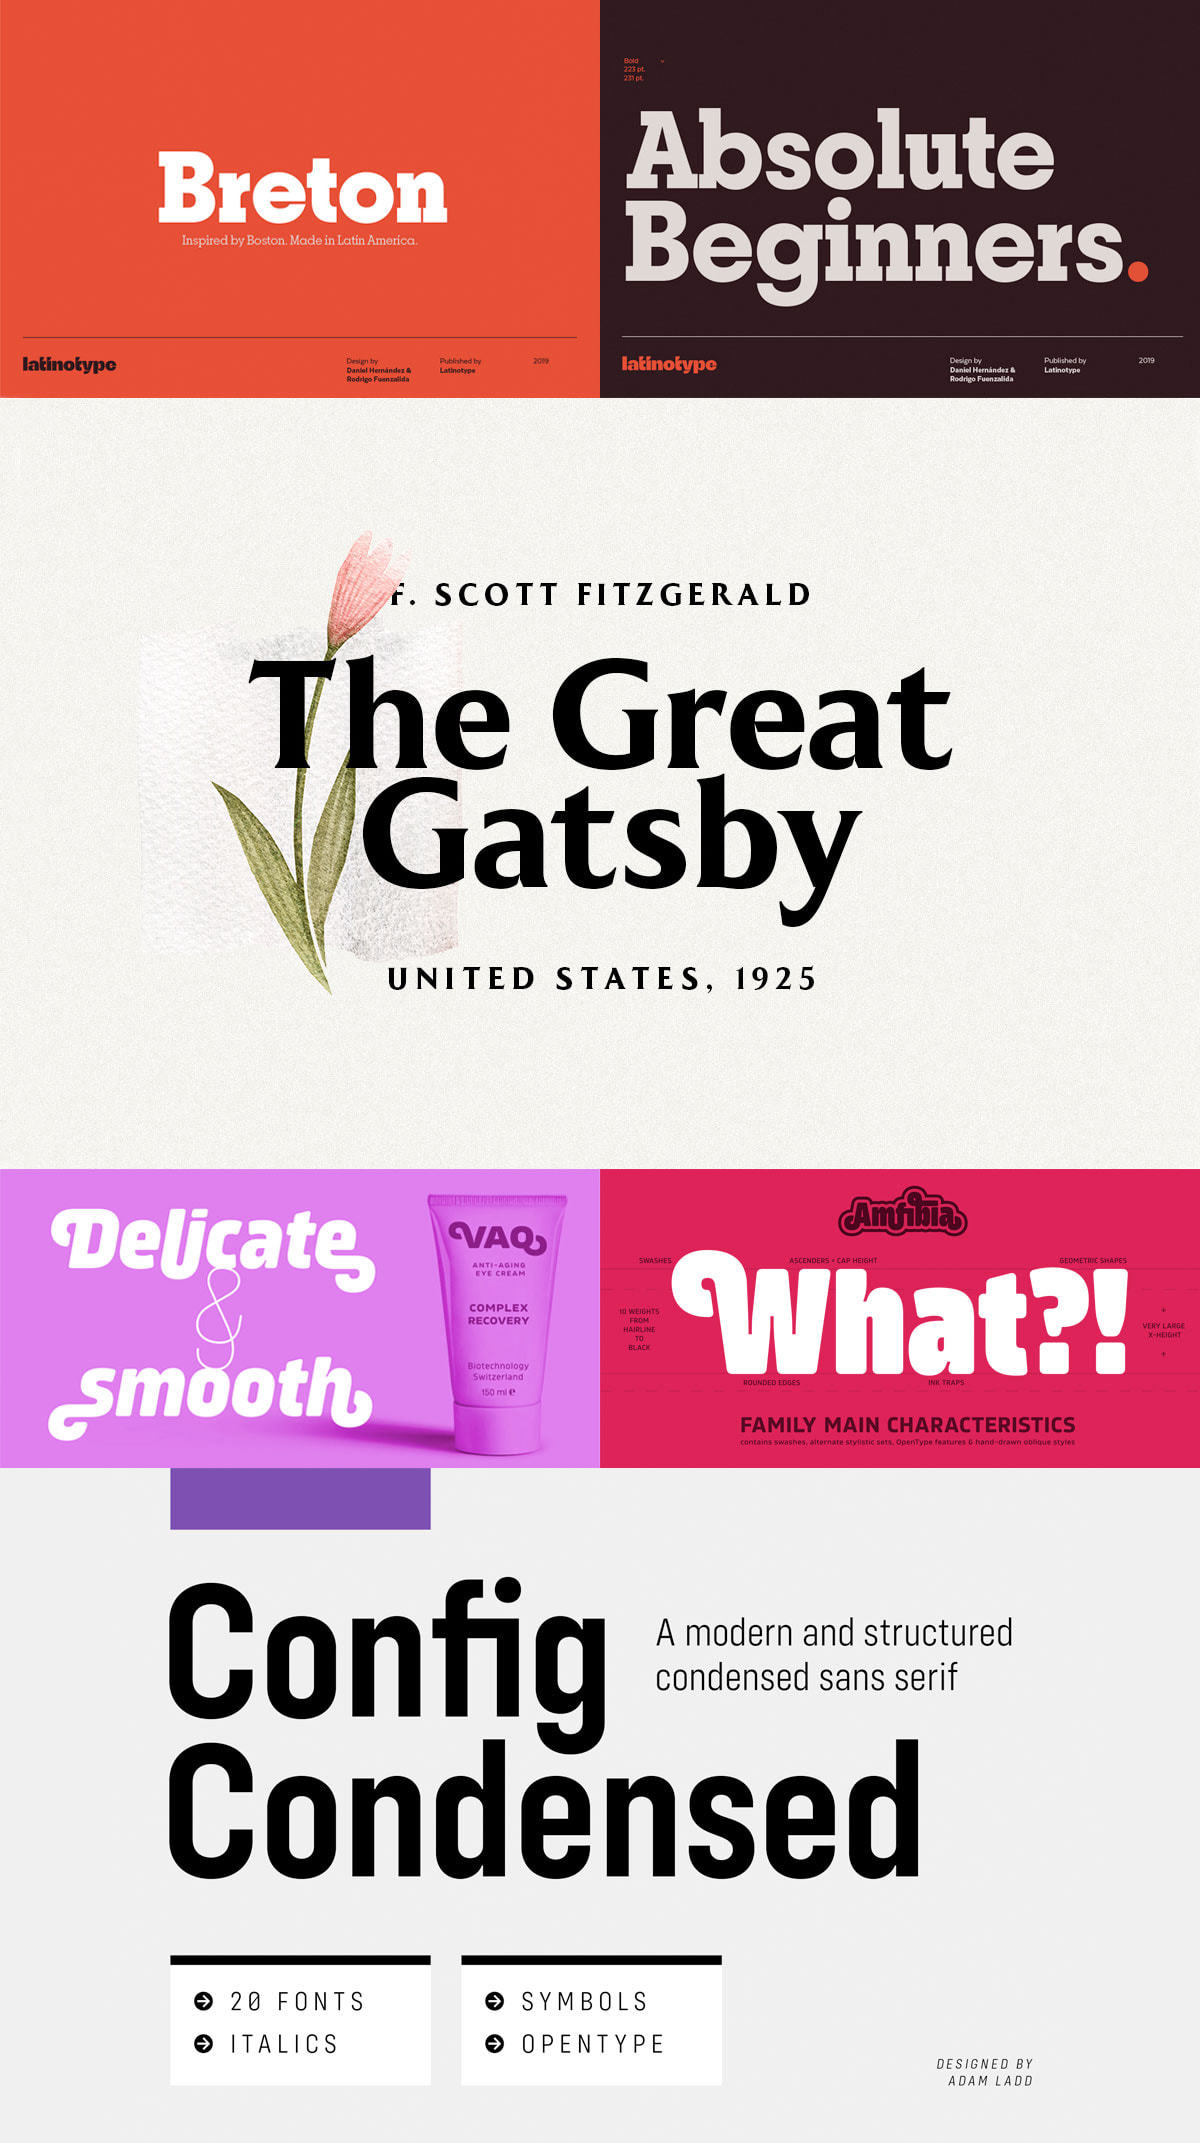 The Complete Eclectic Font Collection | Veerle's Blog 4 0